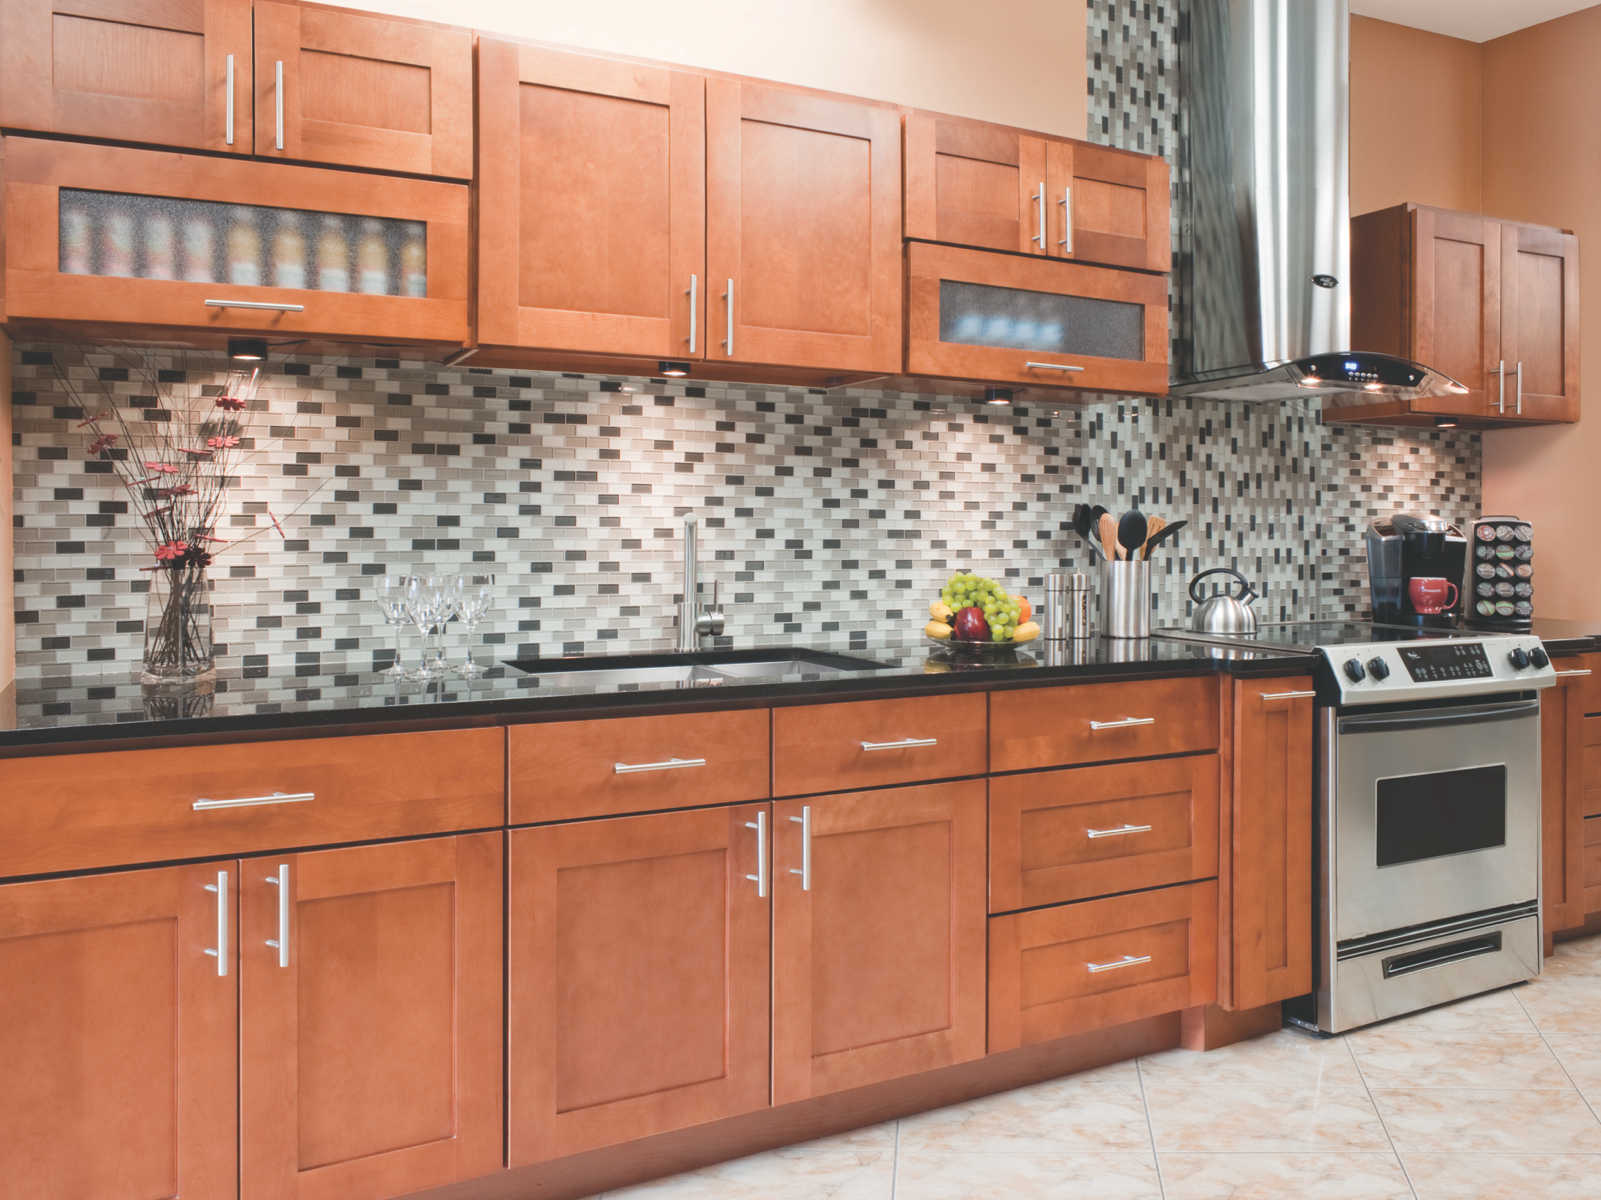 Newport Cabinetry All Wood Construction Full Overlay Maple Wood Cam Lock Assem Kitchen Cabinet Styles Used Kitchen Cabinets Solid Wood Kitchen Cabinets